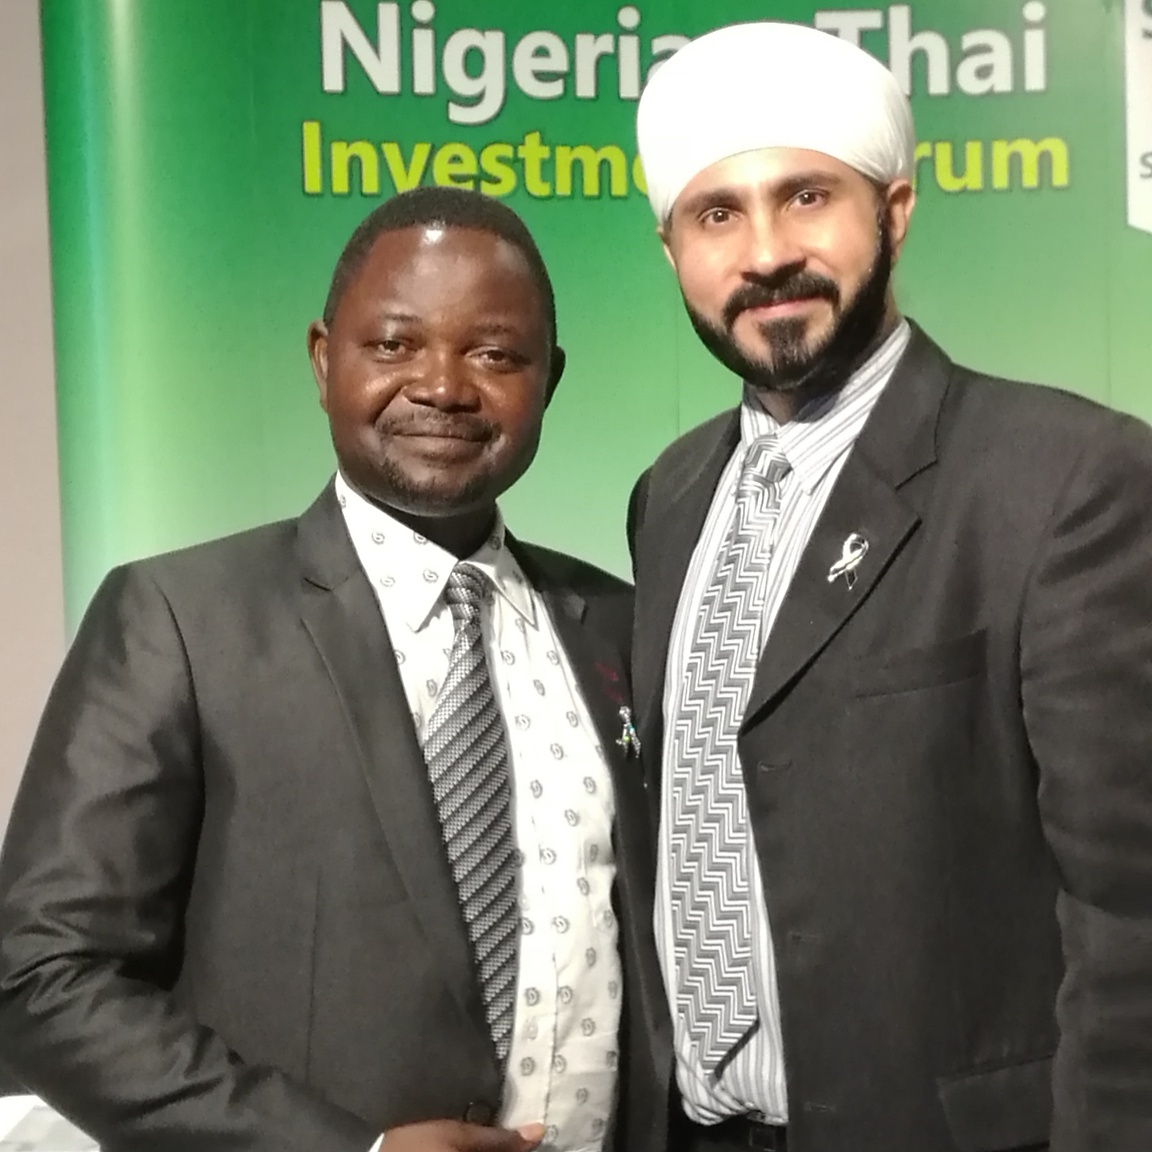 with H.E. Irmiya J. Jelison, Finance Attachd, Embassy of Nigeria